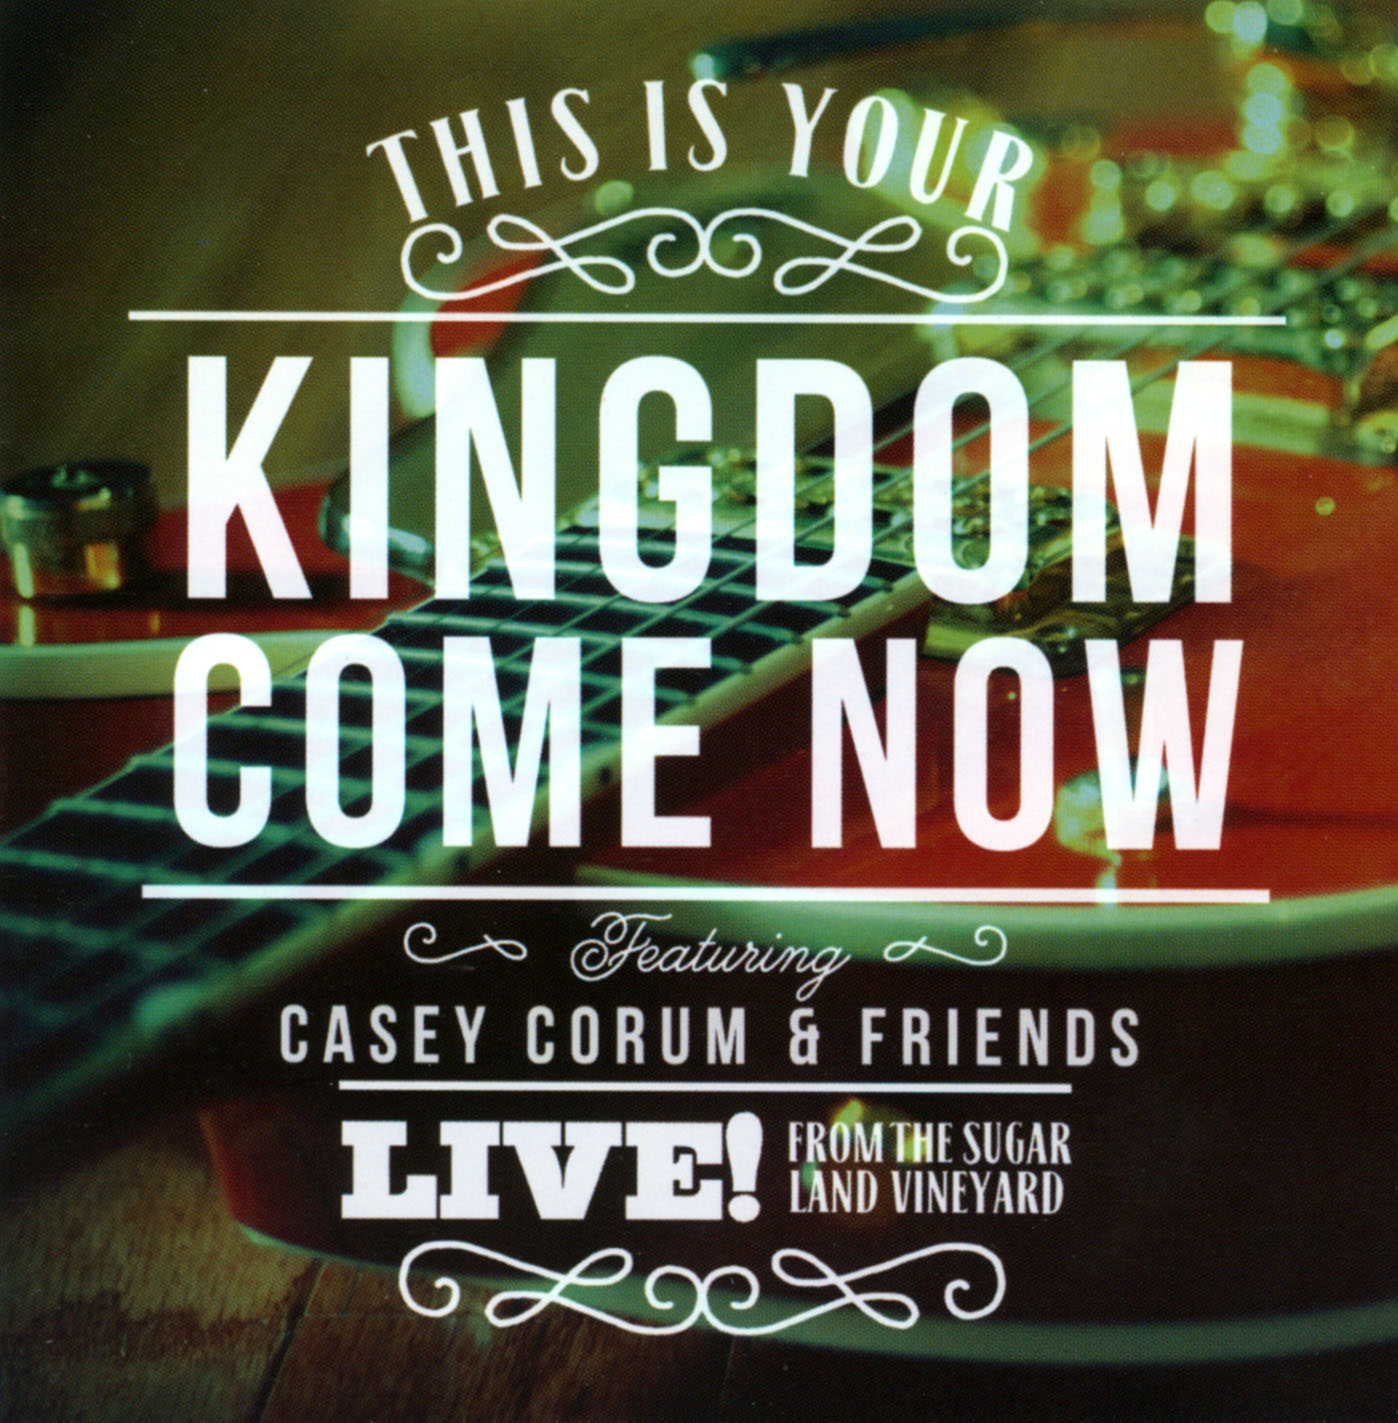 Casey Corum & Friends: This Is Your Kingdom Come Now